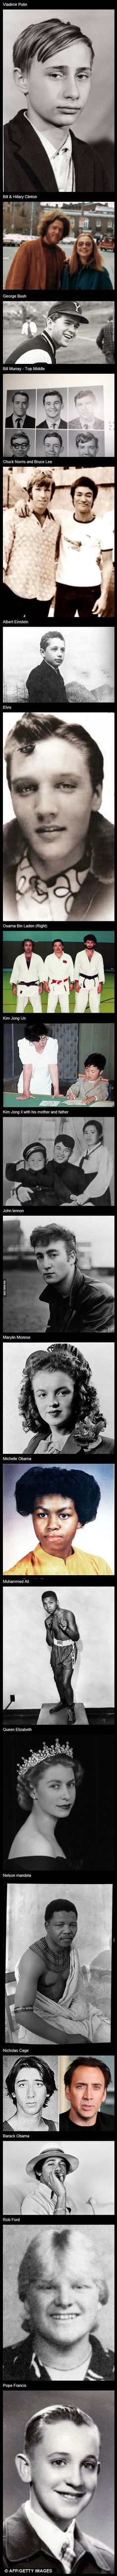 20 famous people when they were young.